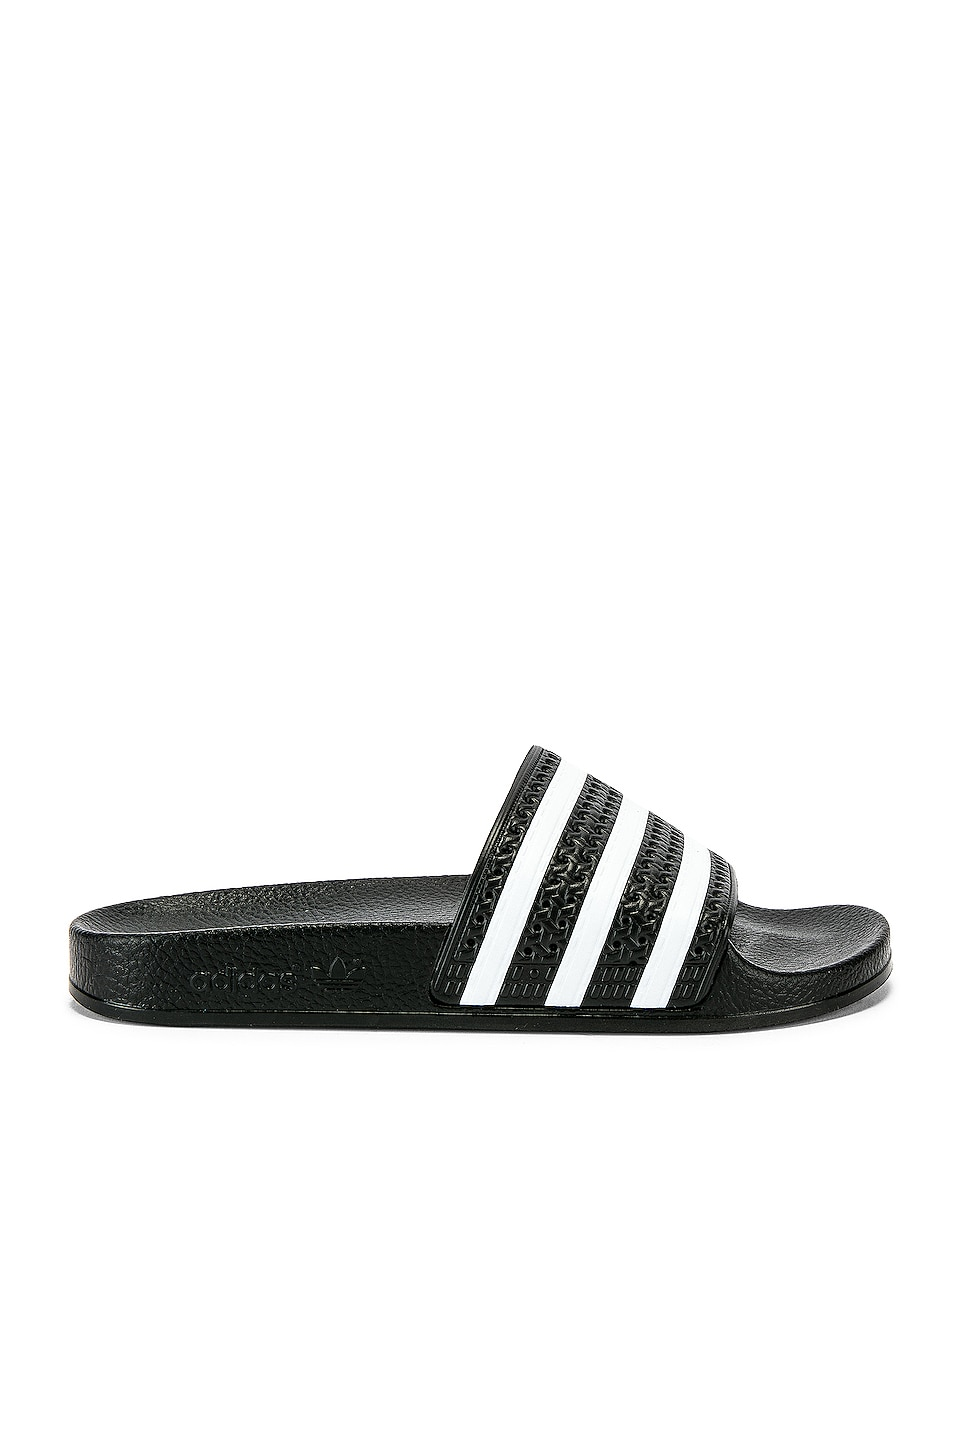 adidas Originals Adilette Slide in Black